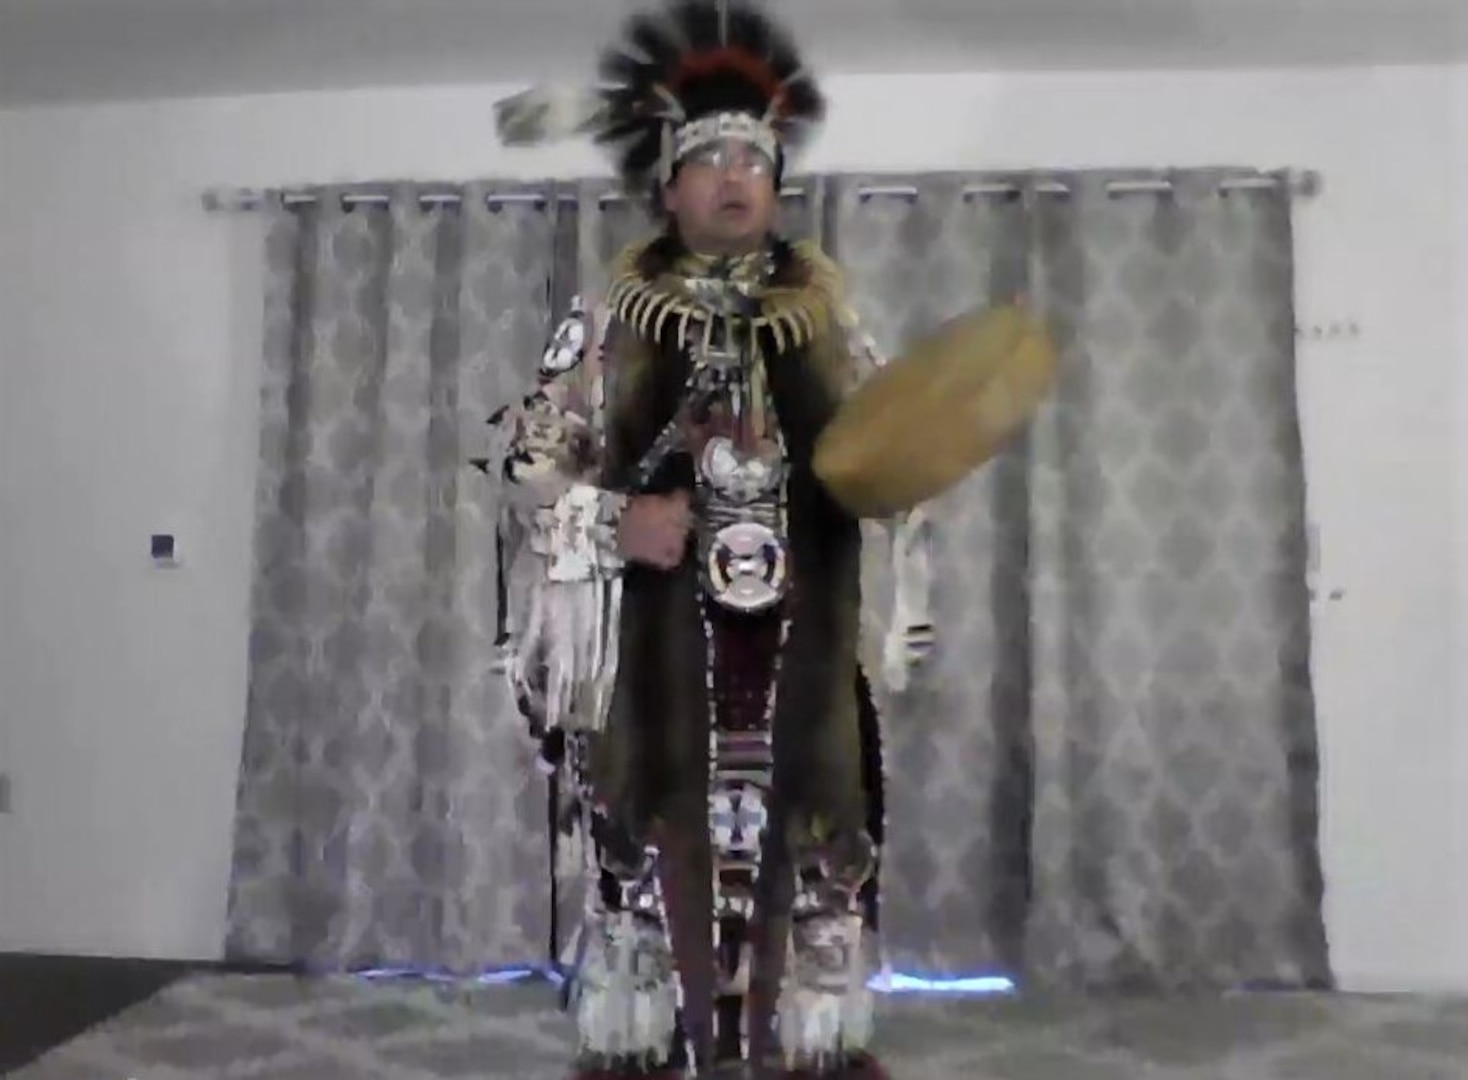 A Native American man wearing traditional garb performs a dance.